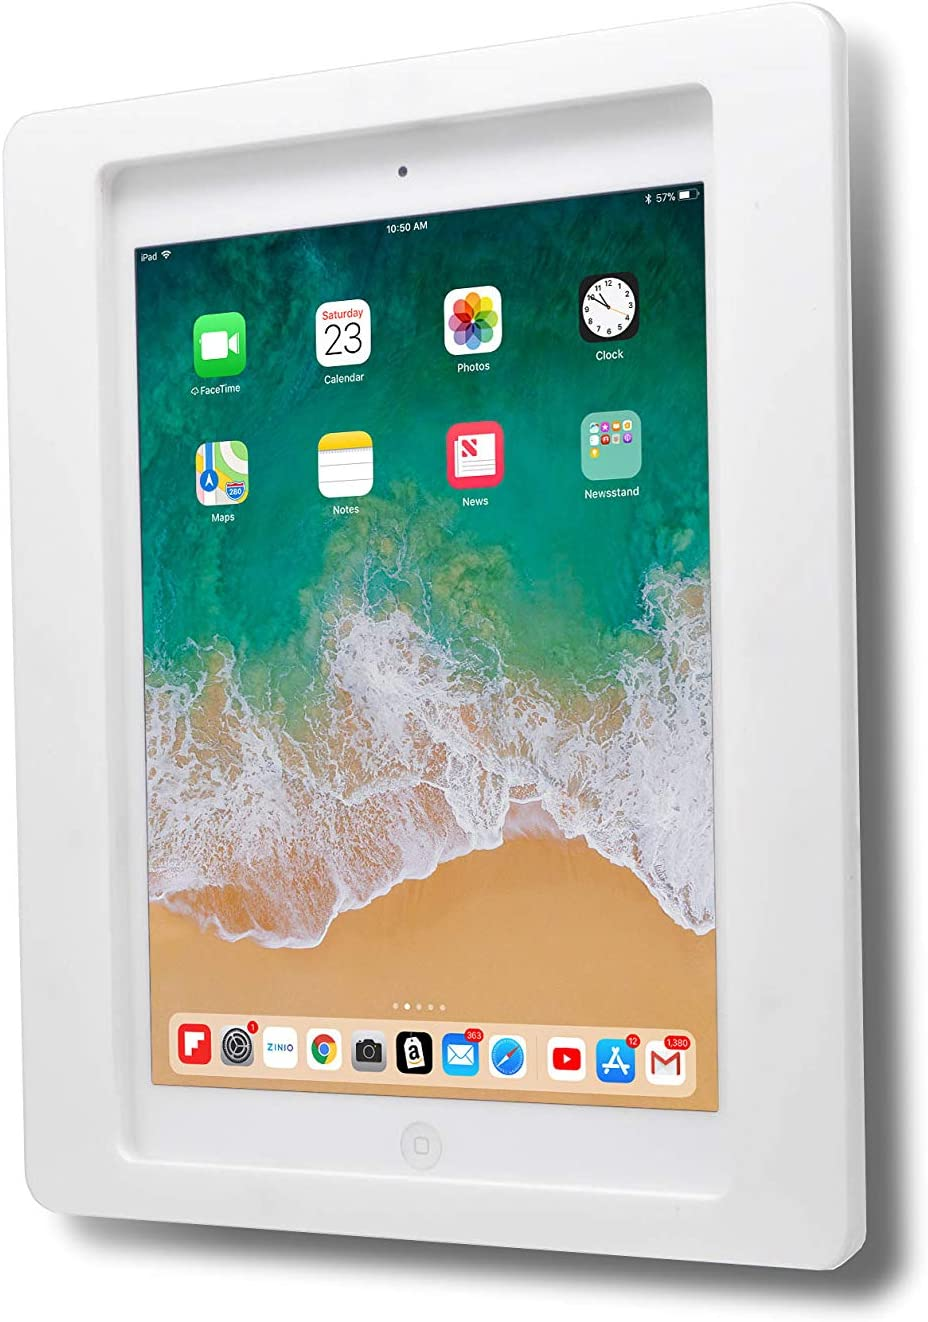 "TABcare Anti-Theft Acrylic VESA Enclosure for Apple iPad Mini 1/2/3 with Free Wall Mount Kit & 90-Degree Angle Charge Cable (iPad Mini 1/2/3 8"", White)"